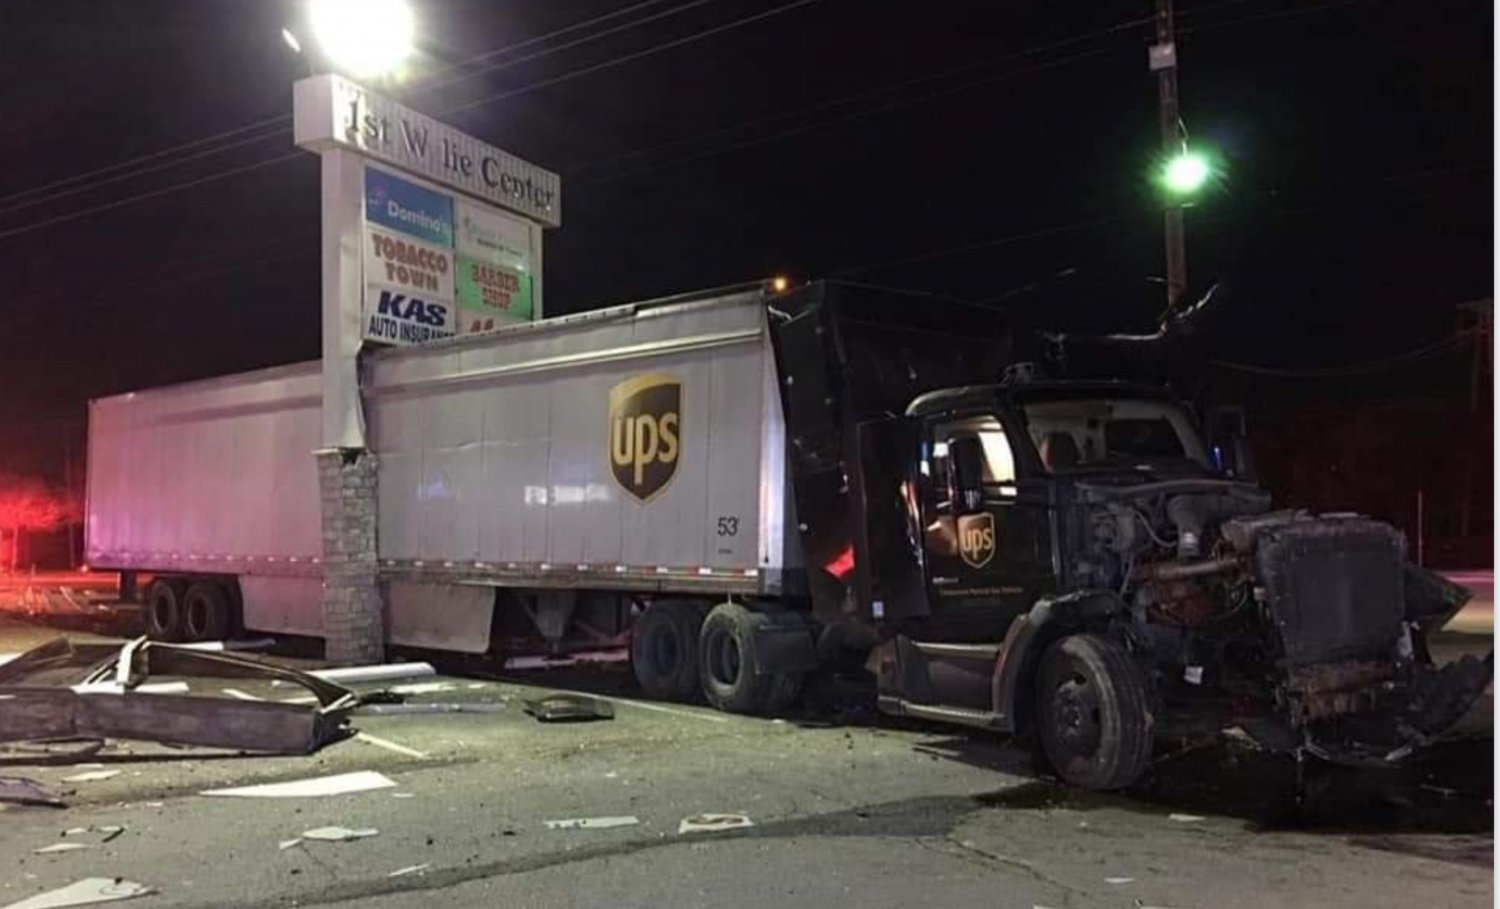 UPS Truck vs Pylon Sign.jpg